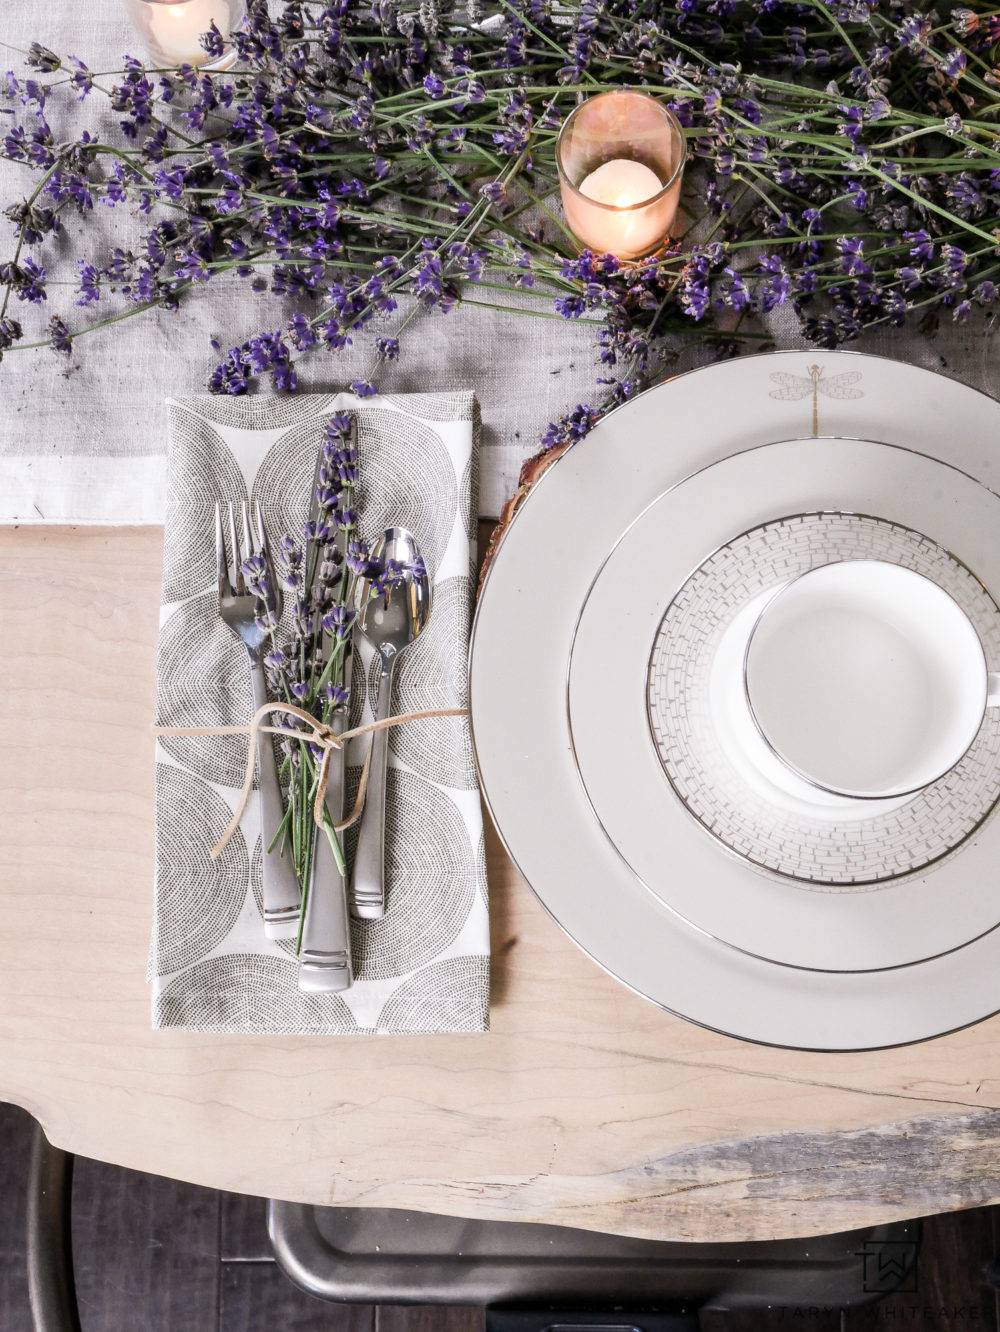 Using fresh lavender on your table creates a very earth and organic table design.